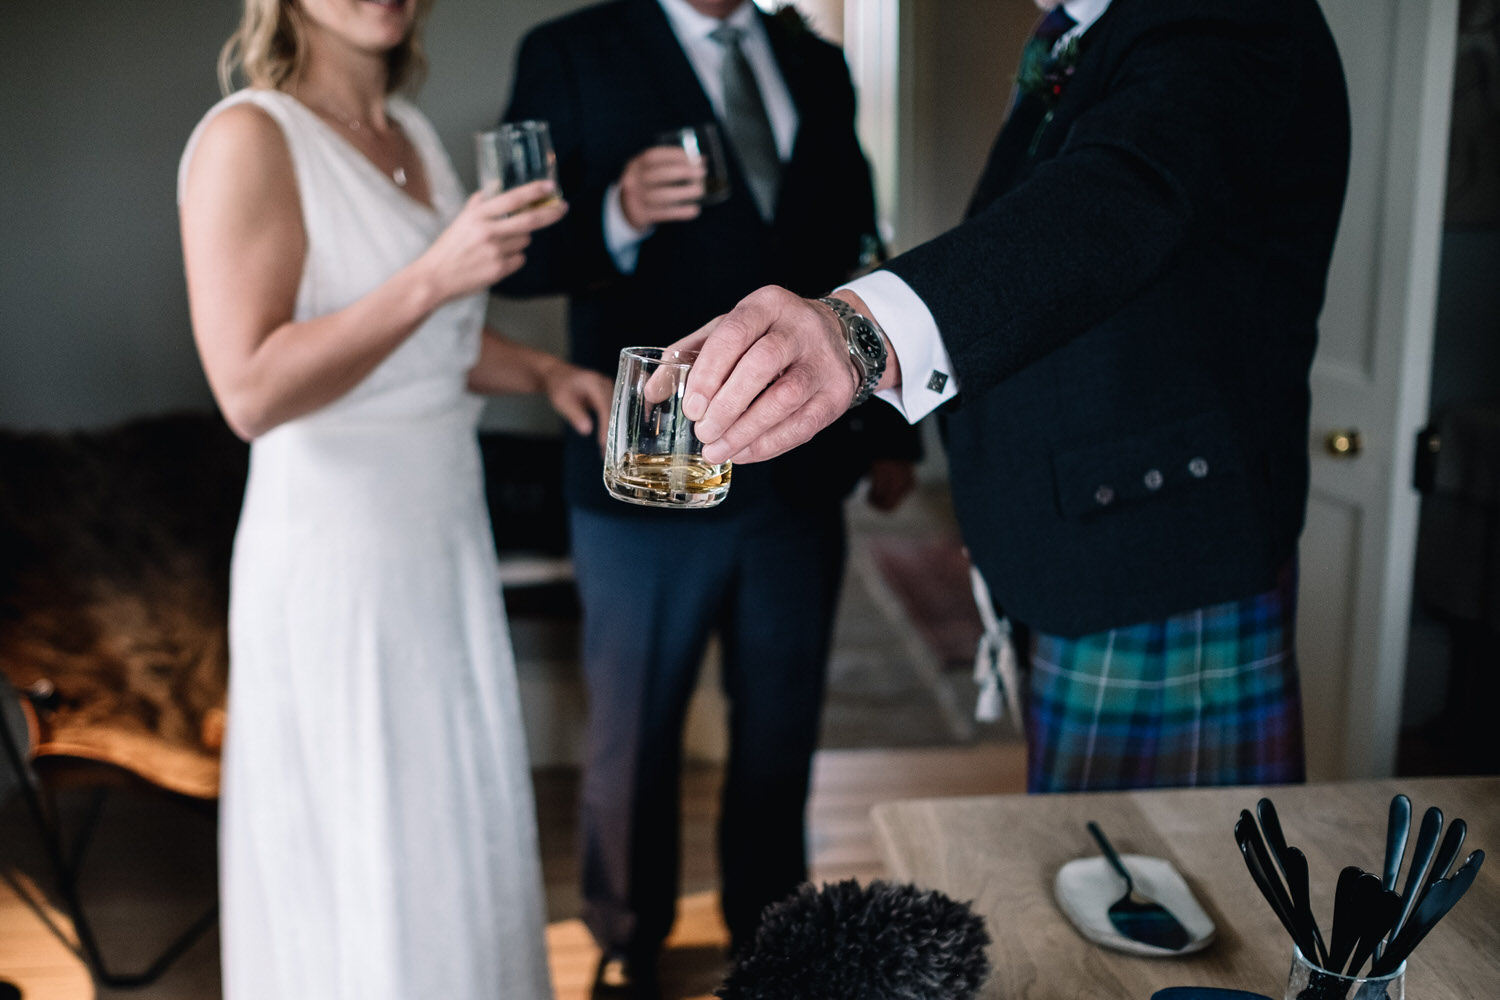 the groom holds a drink